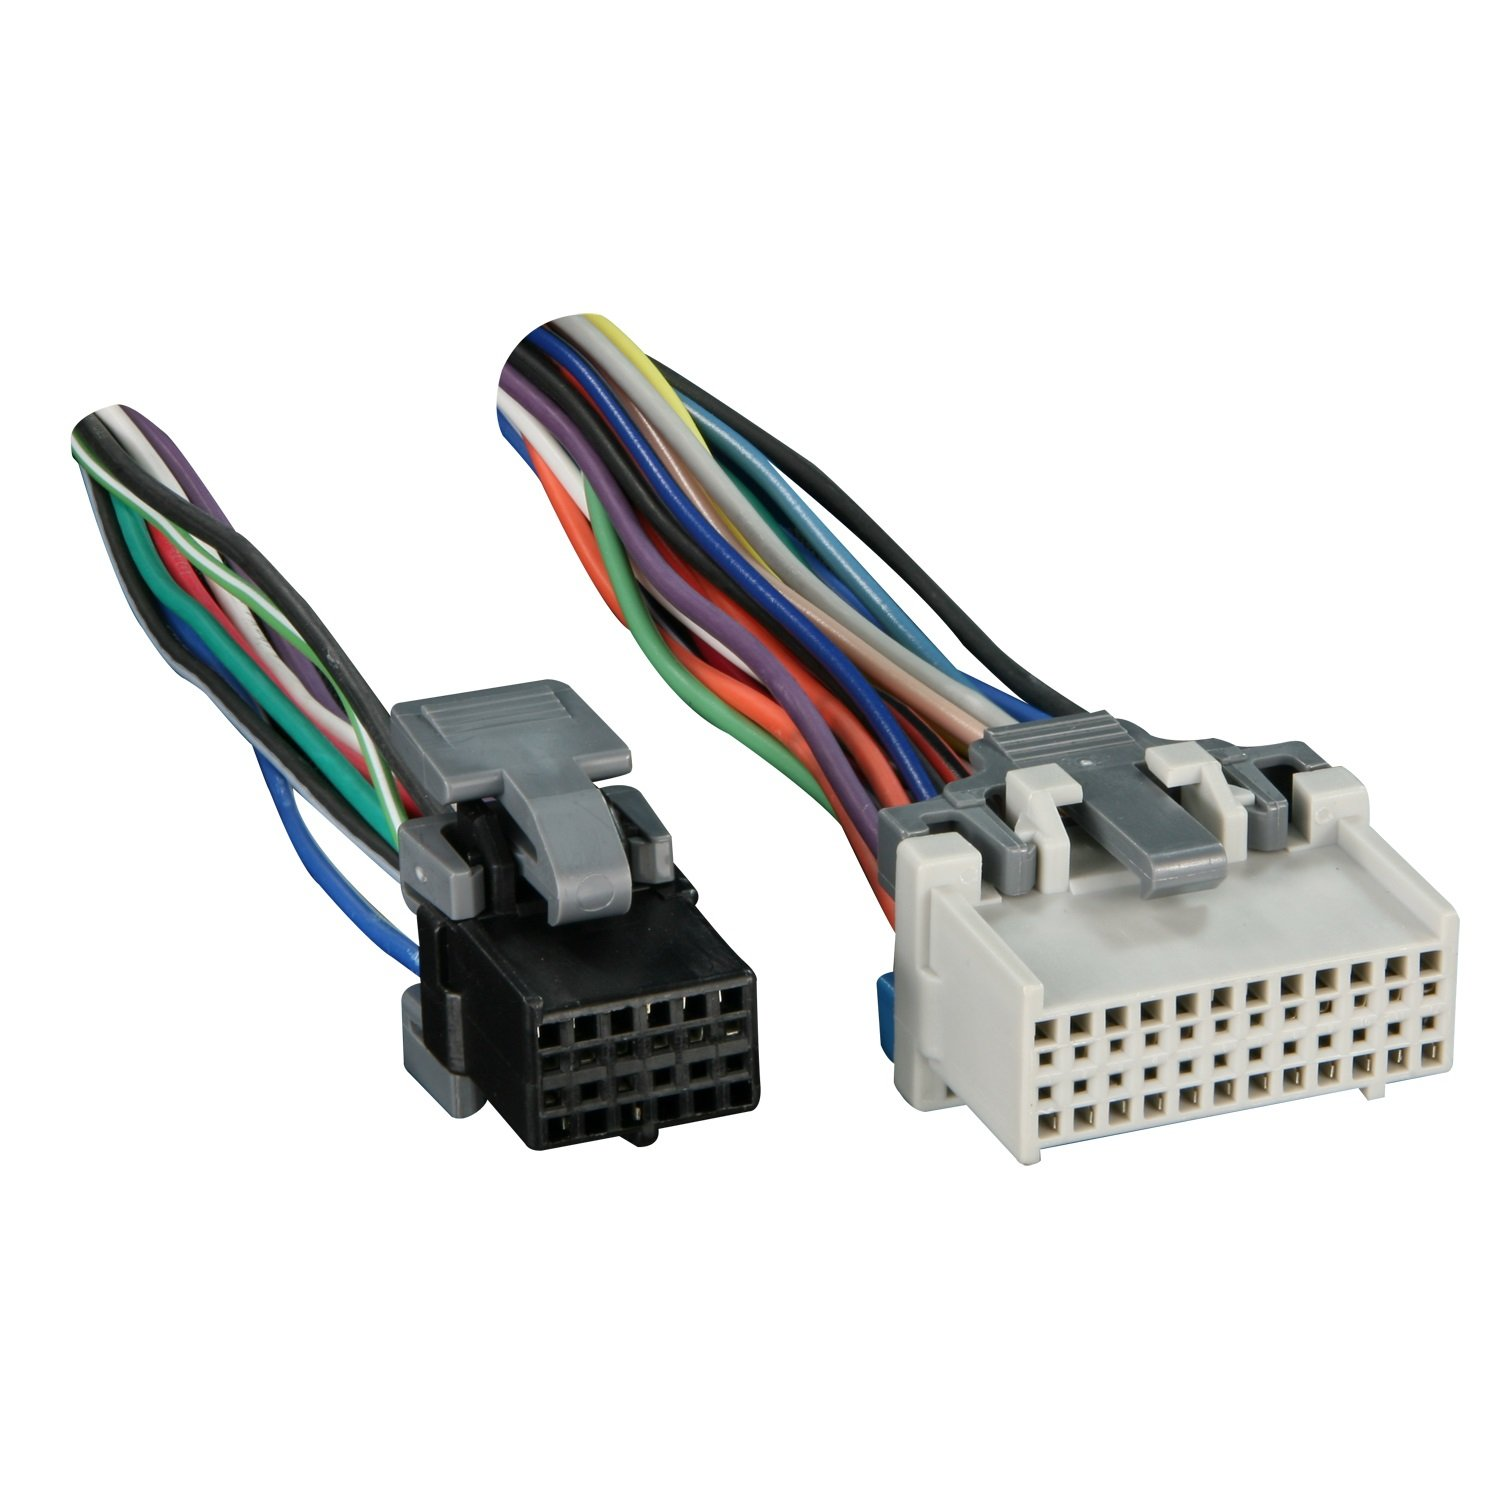 711log4bdML._SL1500_ amazon com metra turbowires 71 2003 1 wiring harness car electronics gmc wiring harness at fashall.co